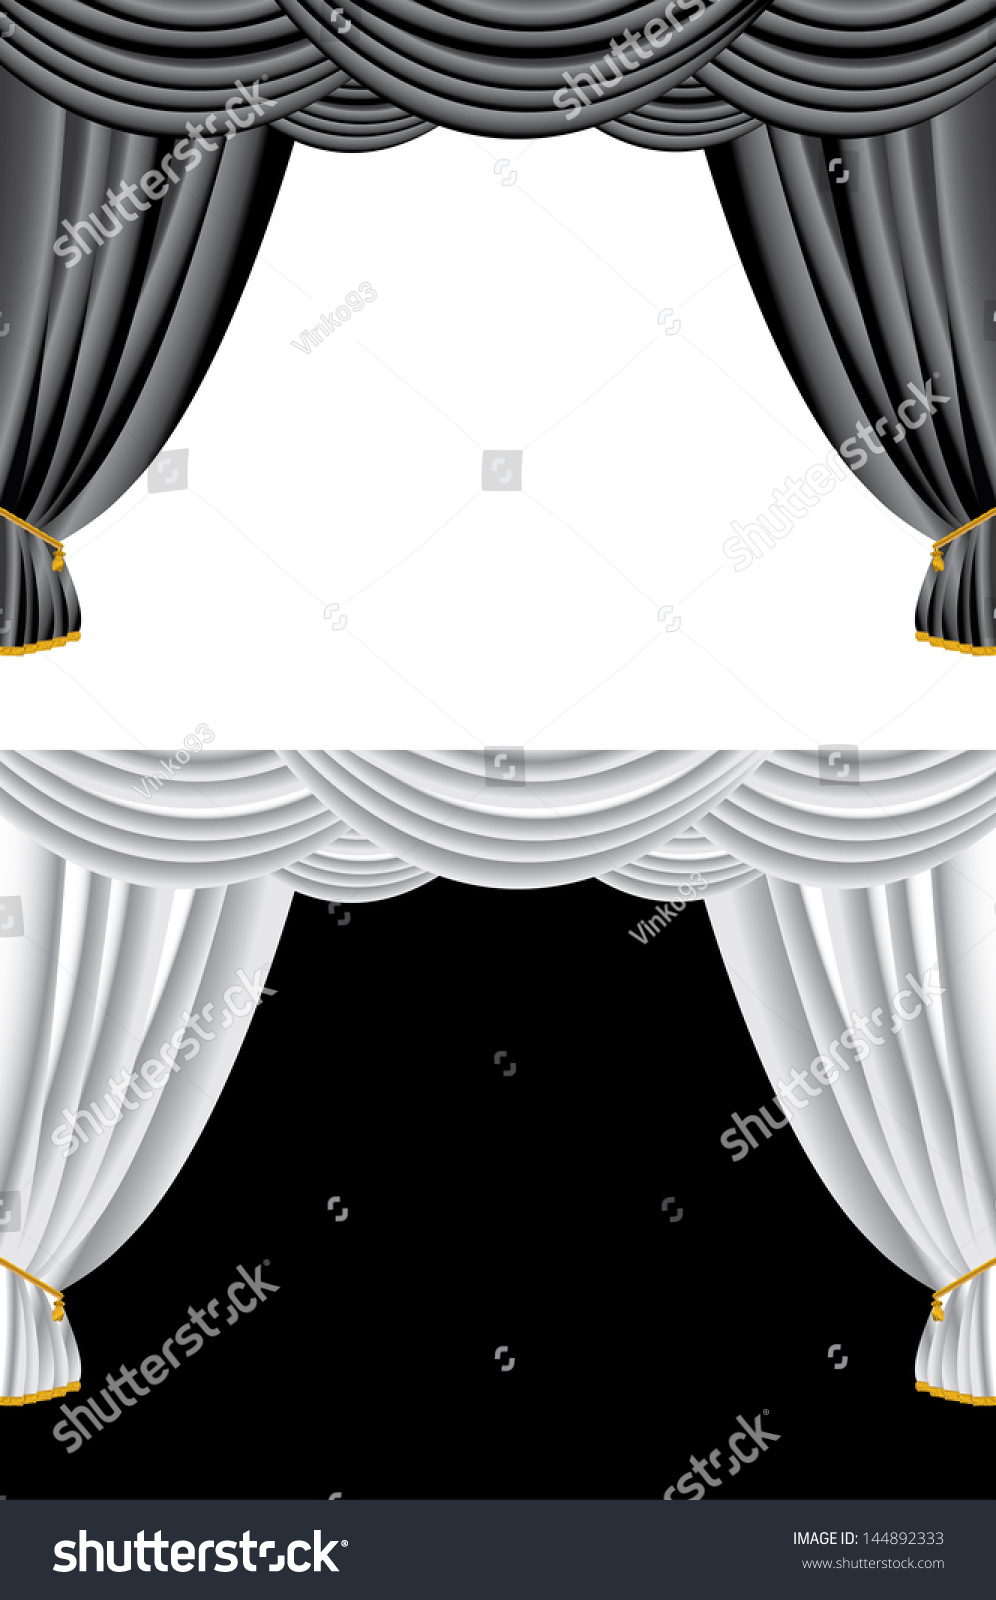 Black and white stage curtain - Vector Illustration Of Black And White Curtains